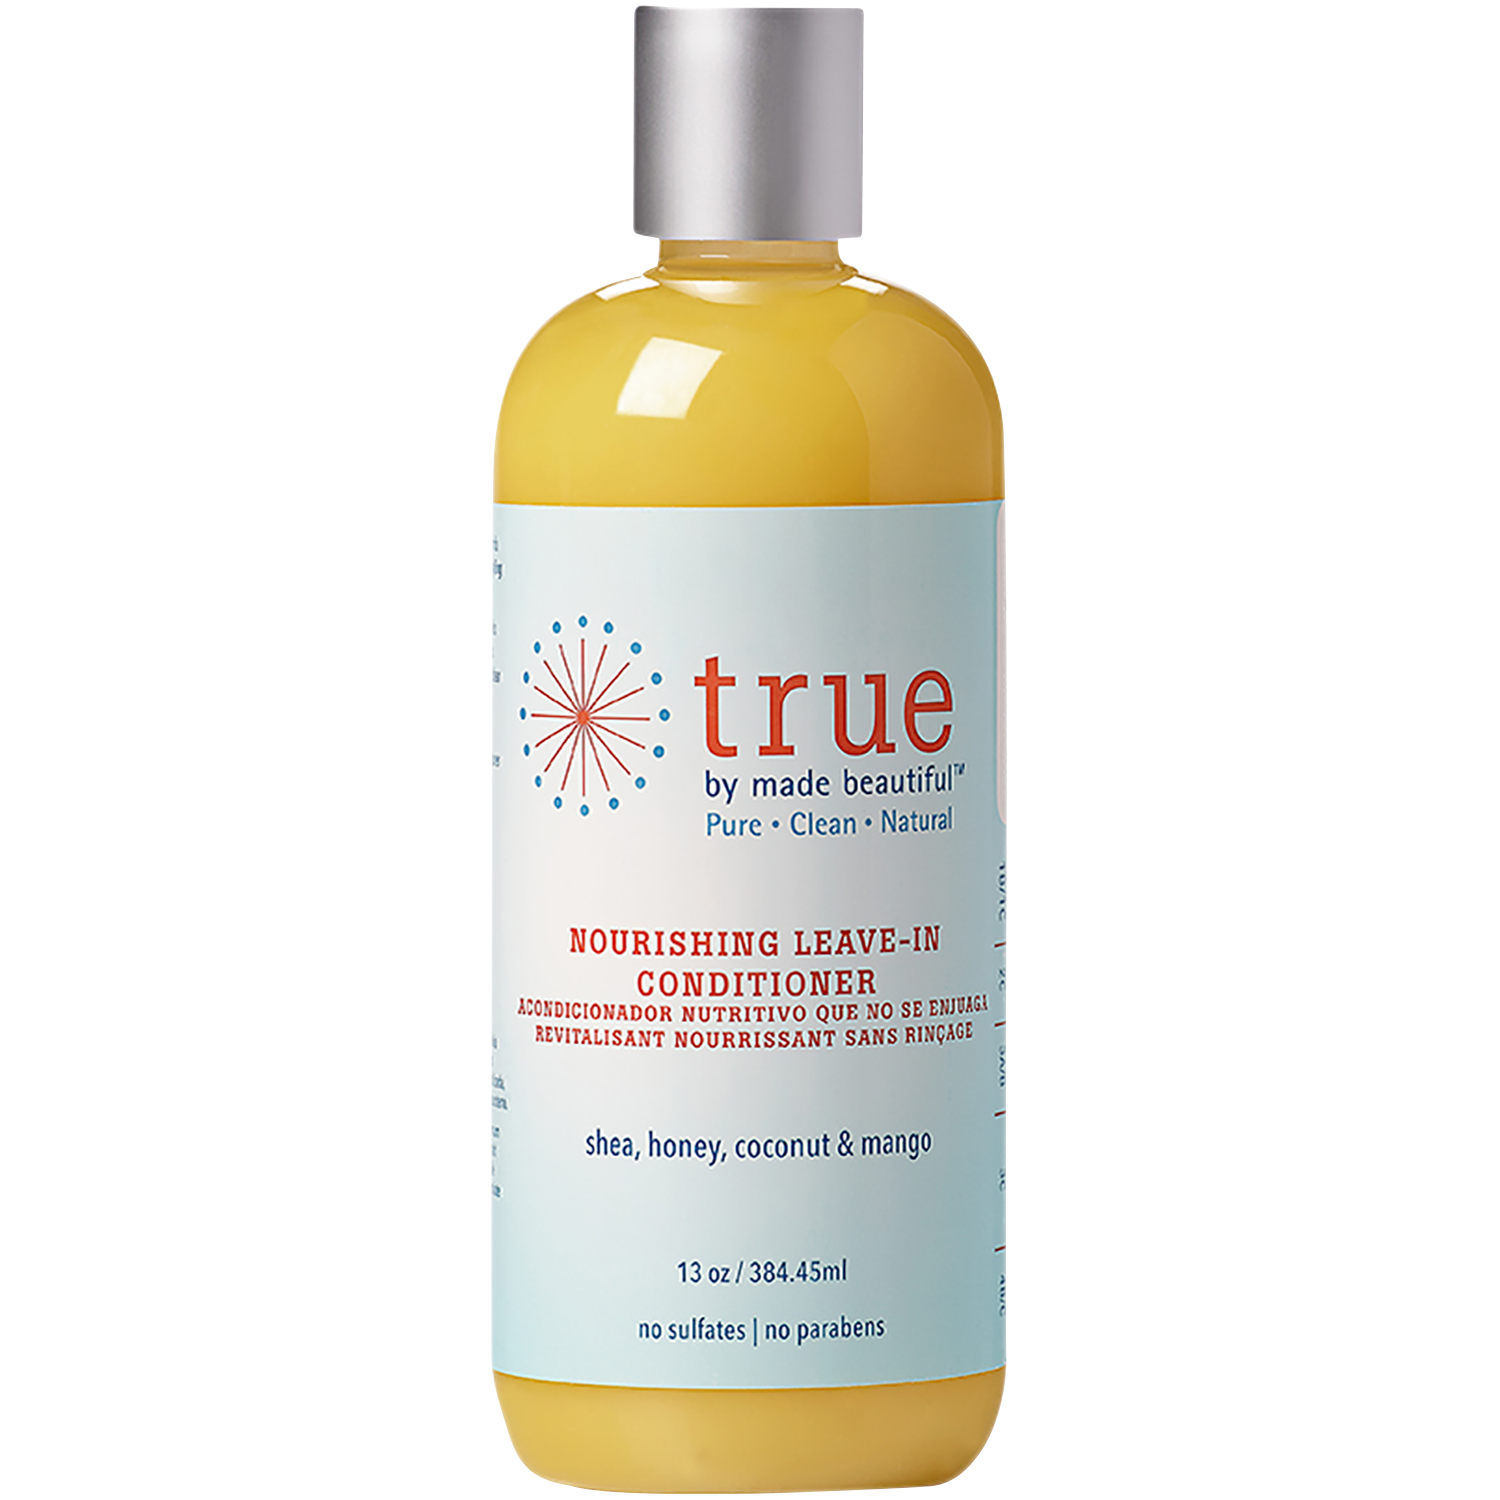 True by Made Beautiful Nourishing Leavein Conditioner is